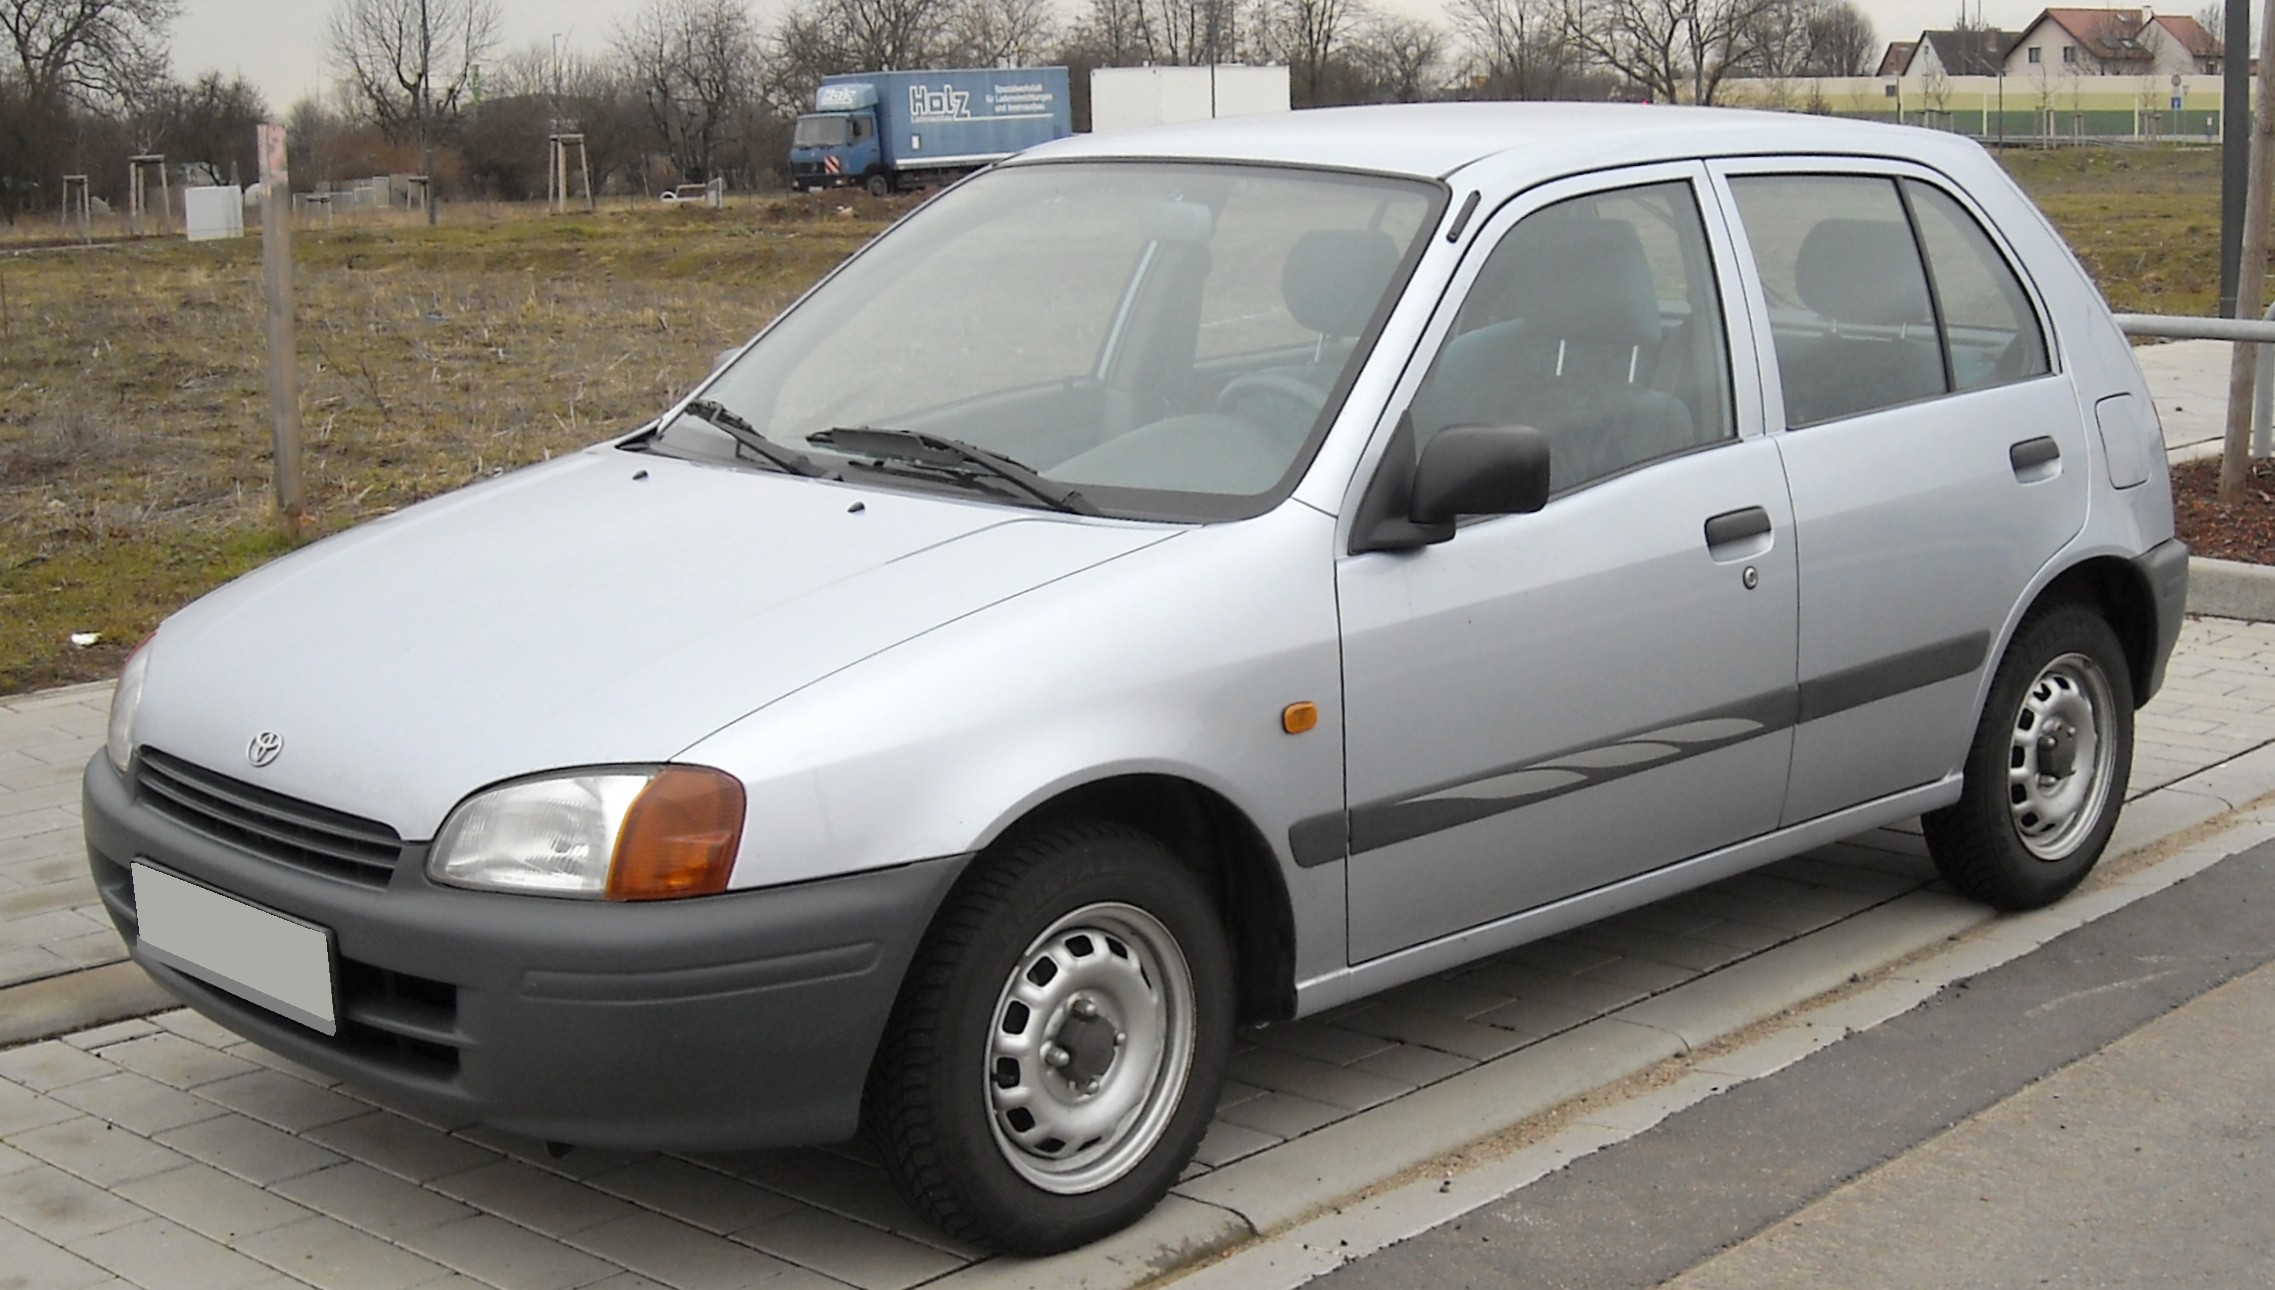 file toyota starlet p90 front wikimedia commons. Black Bedroom Furniture Sets. Home Design Ideas